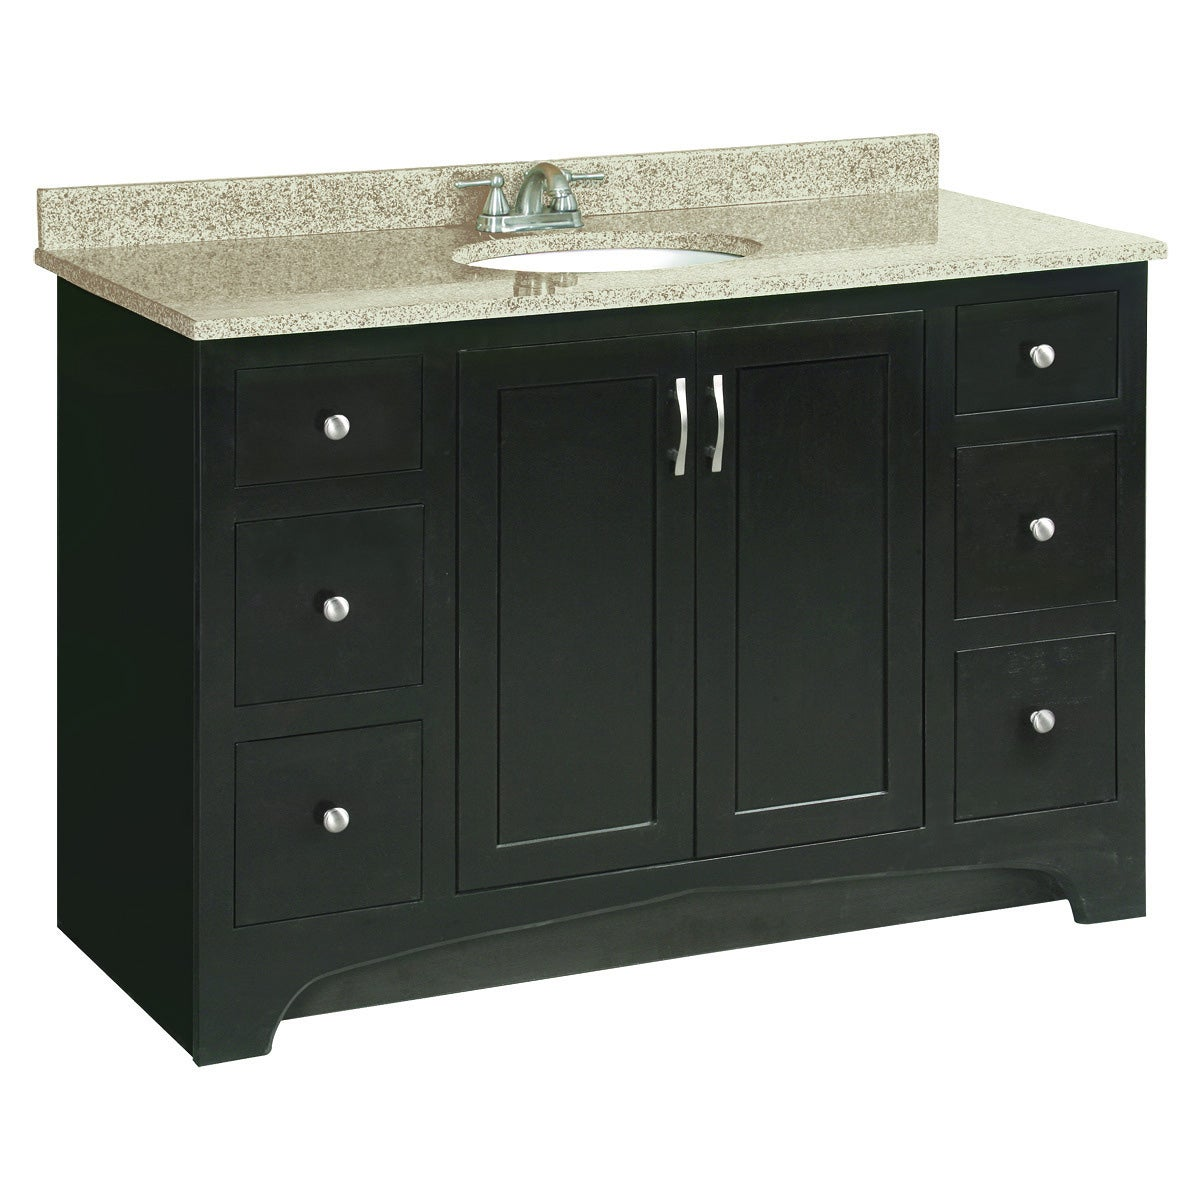 design house ventura espresso vanity cabinet overstock shopping great deals on design house